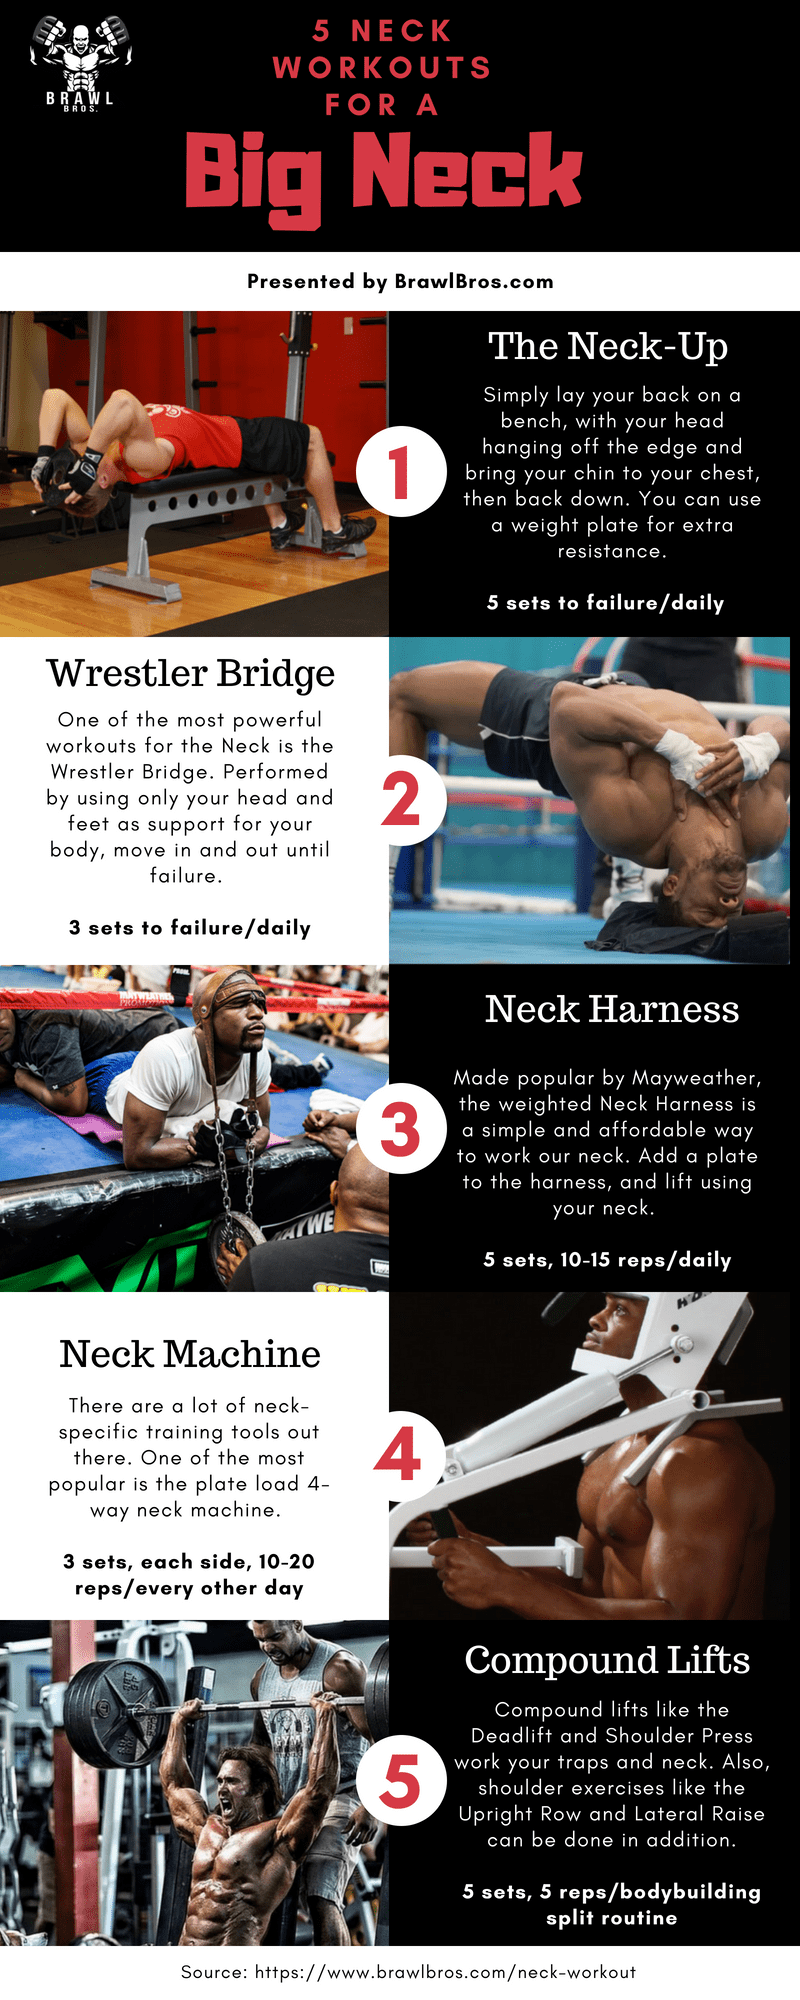 The Neck Workout, How to Get a Big and Strong Neck - Brawl Bros